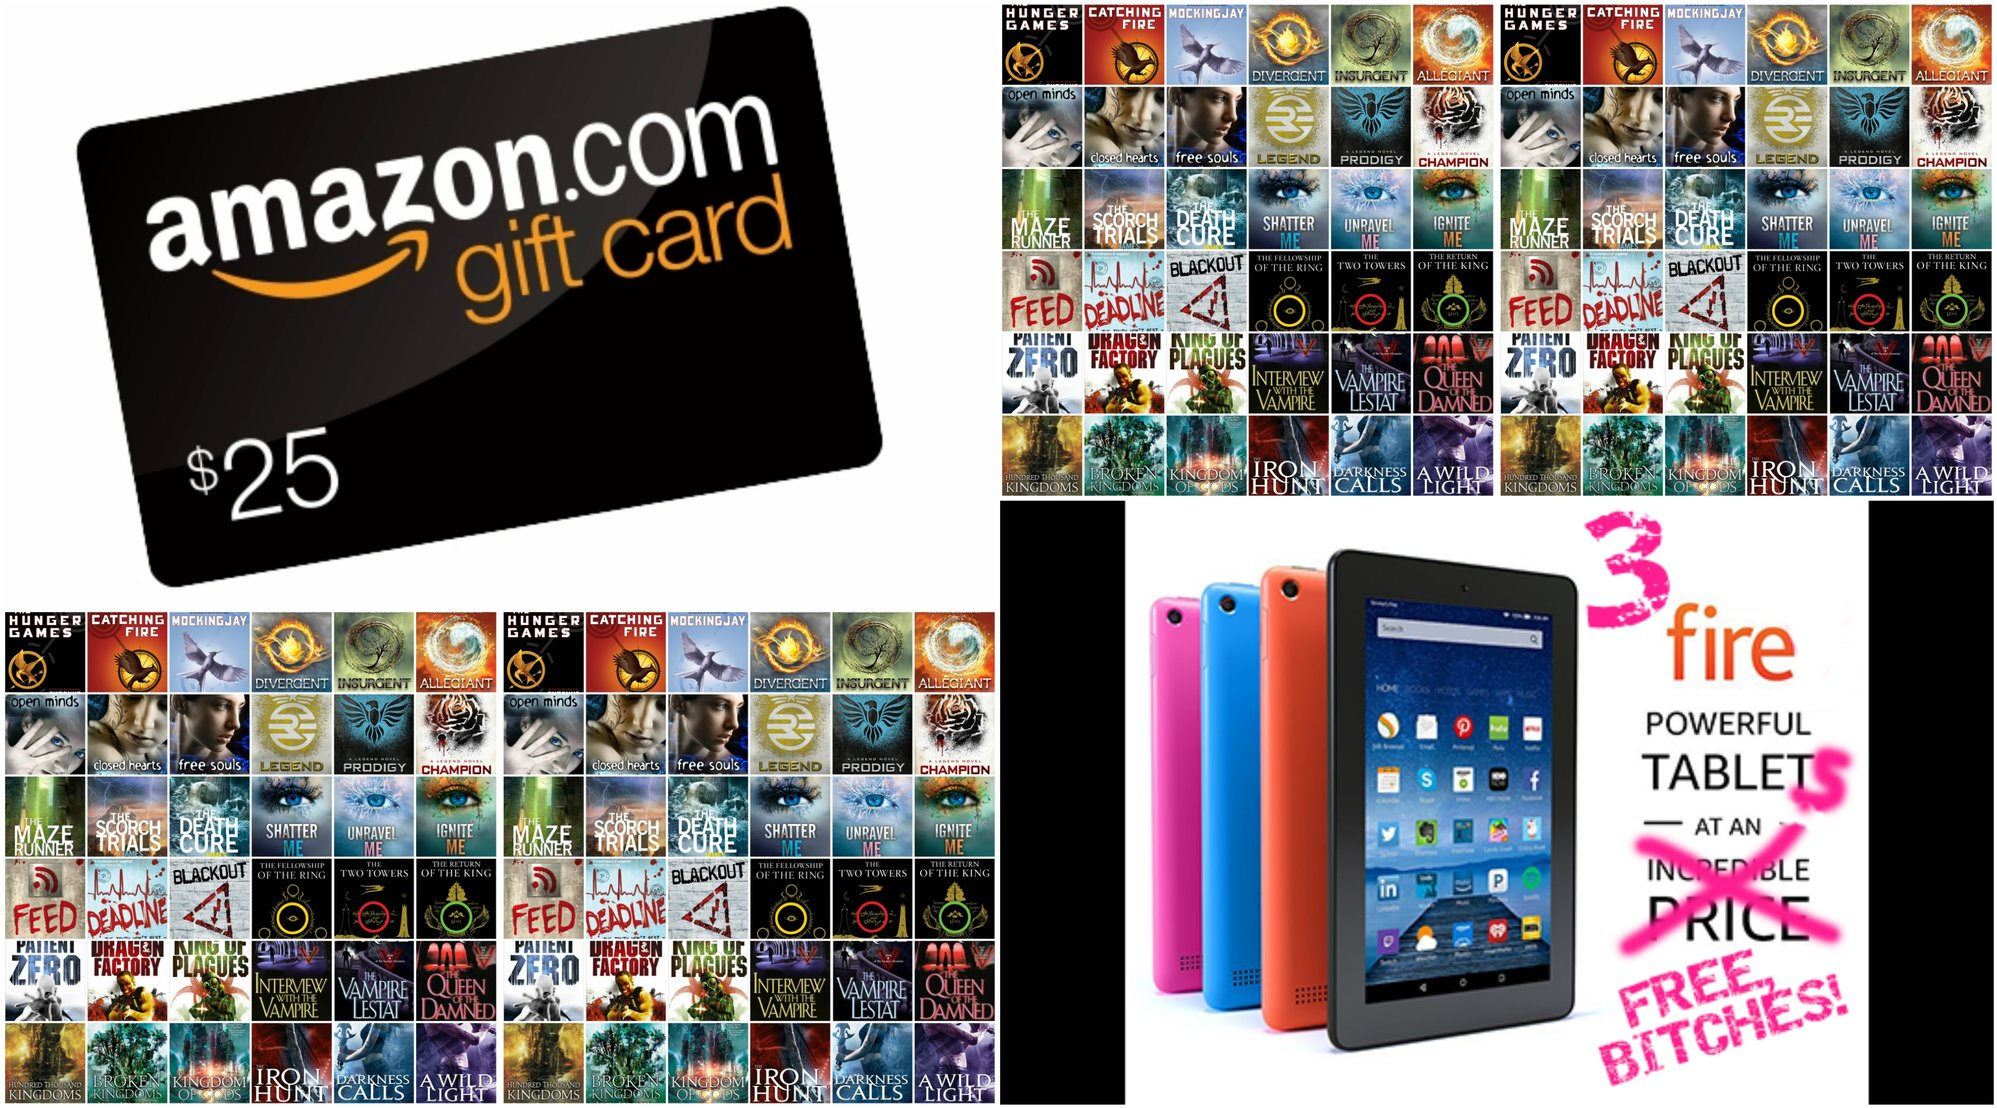 FREE GIVEAWAY! 3 Kindle Fires + $25 Amazon Gift Card + Free E-book Library